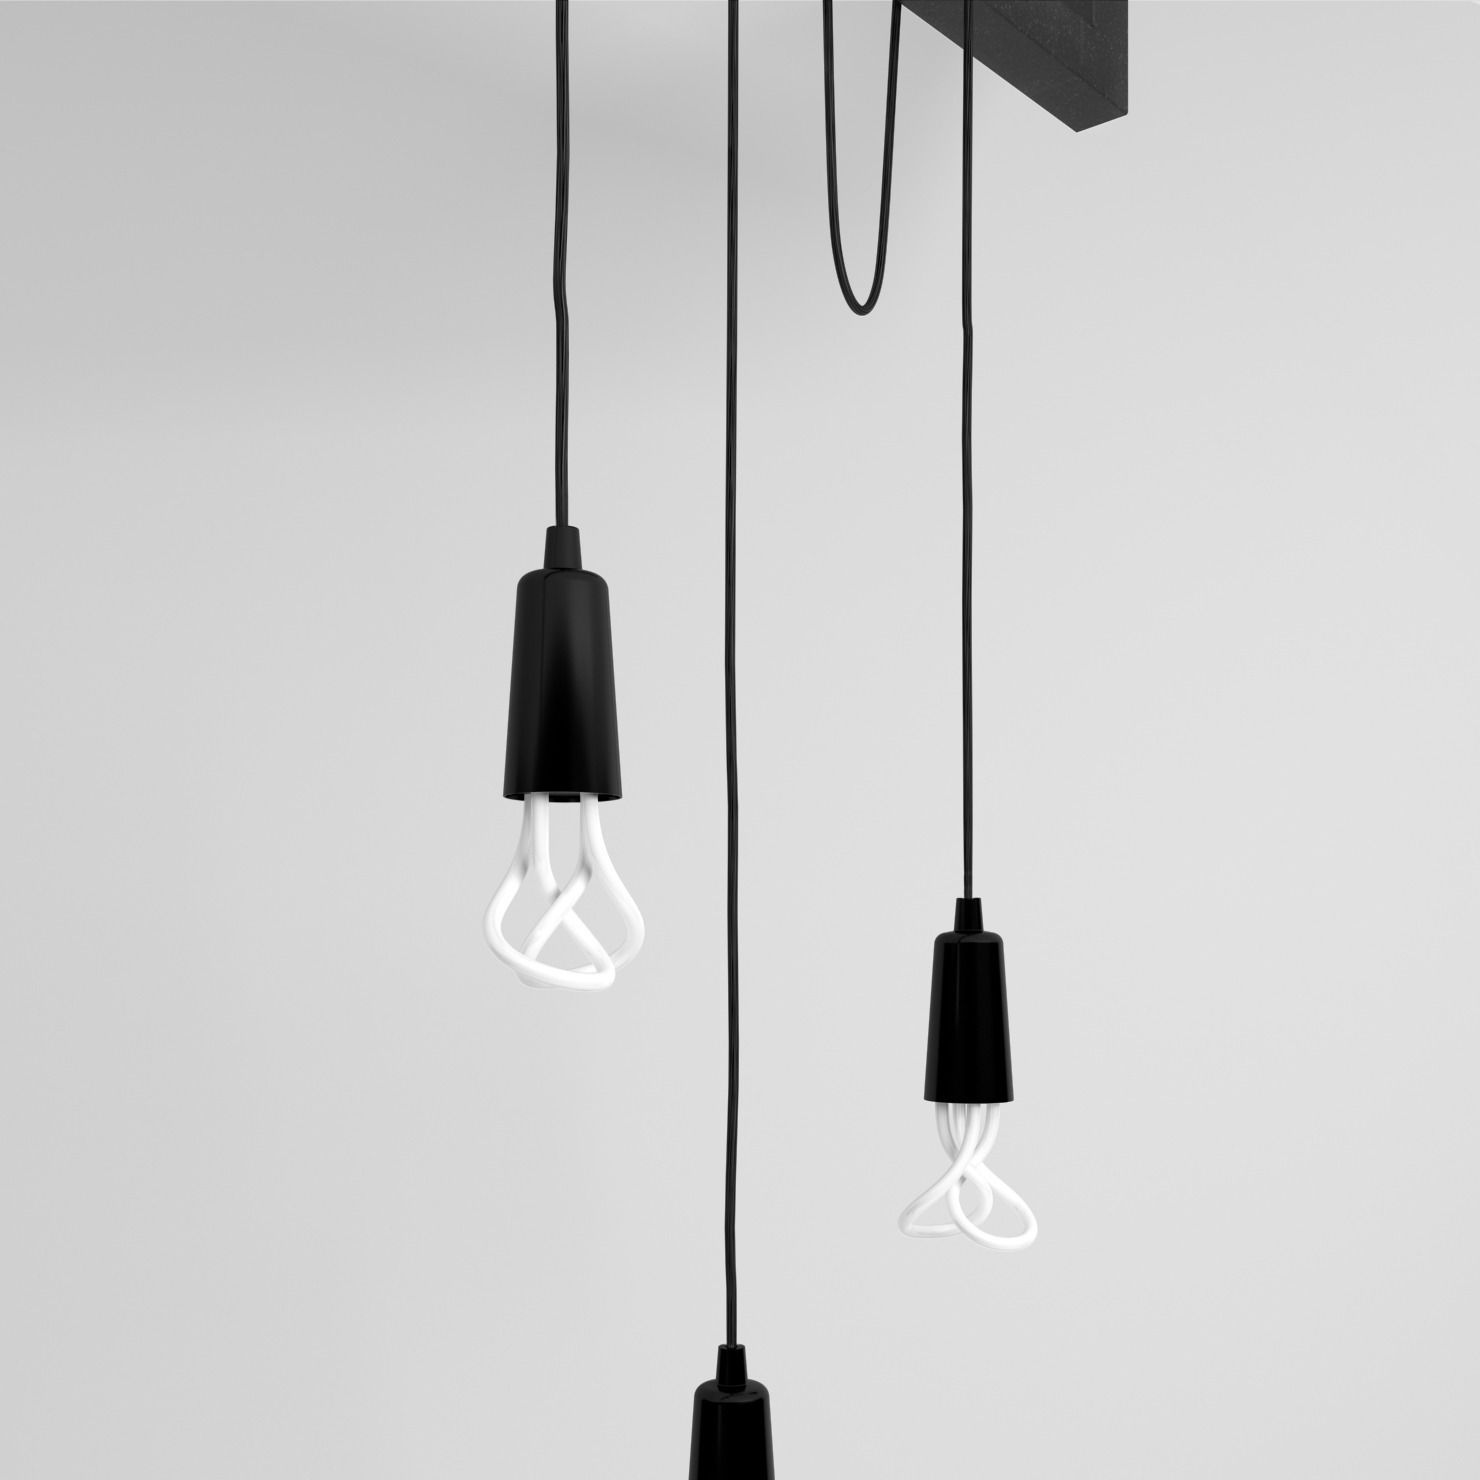 Cable Bar Pendant Light With Original Plum... 3D Model MAX